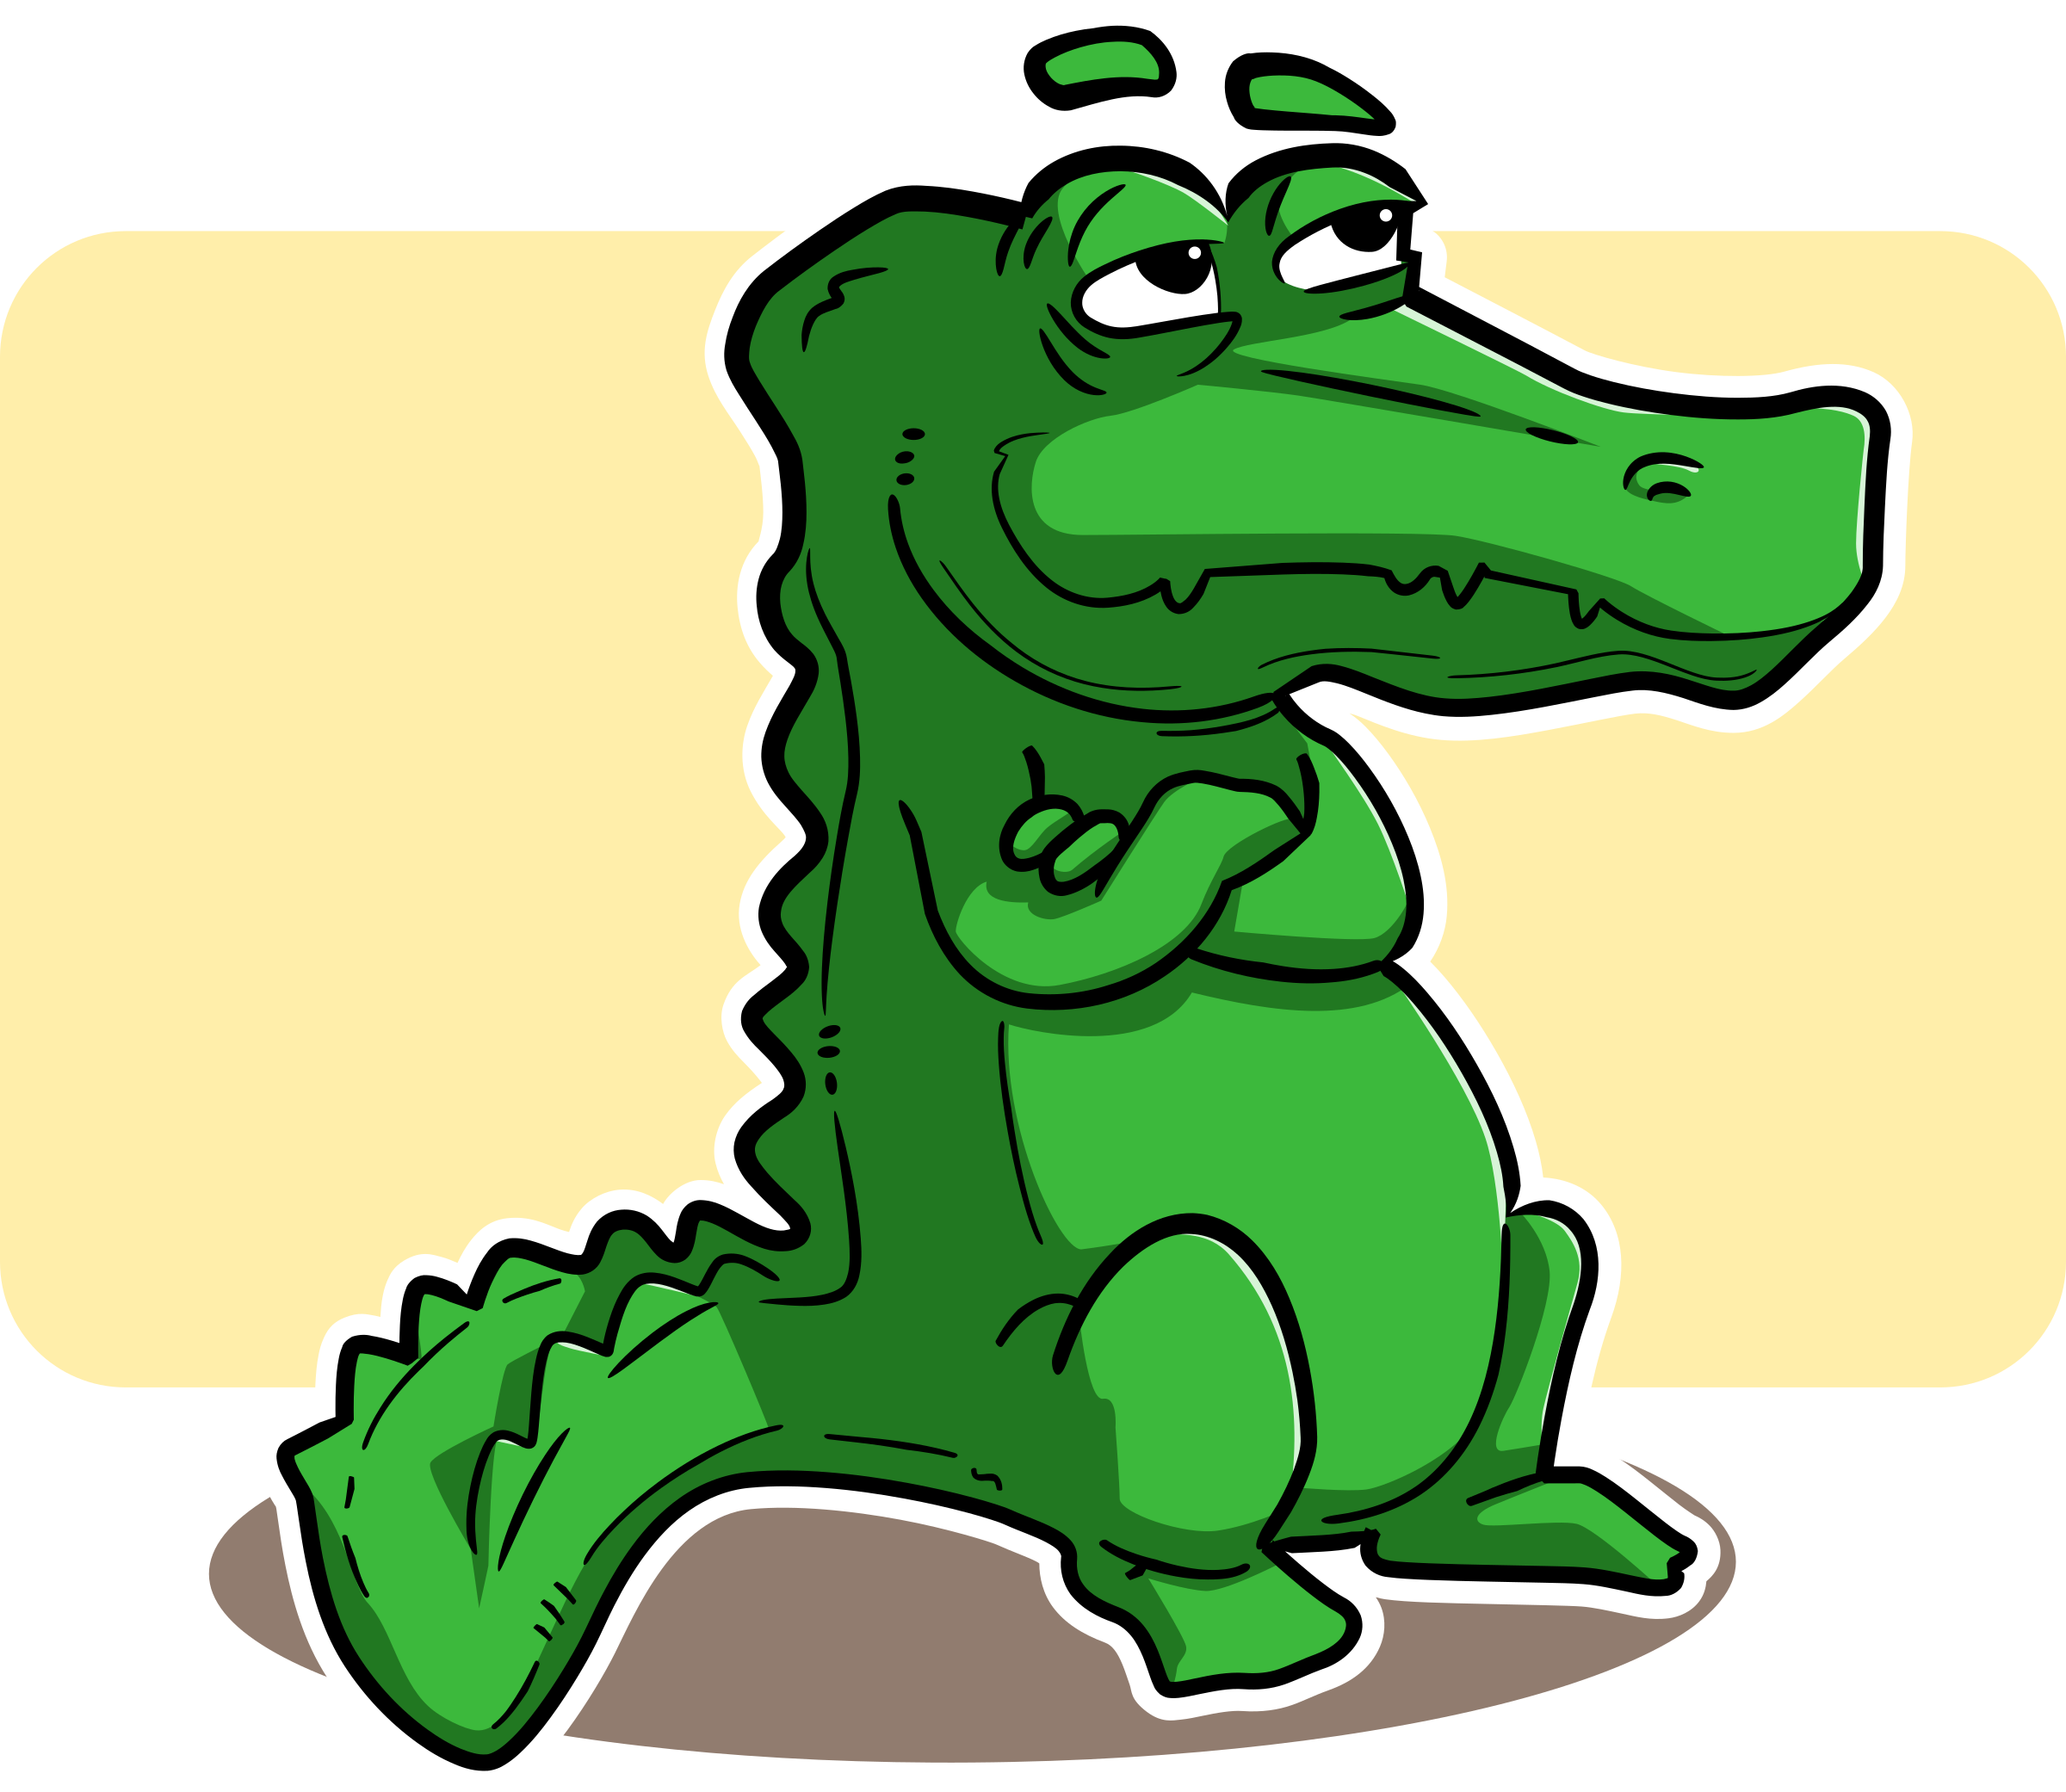 Transparent alligator colored. Crocodile or icons png